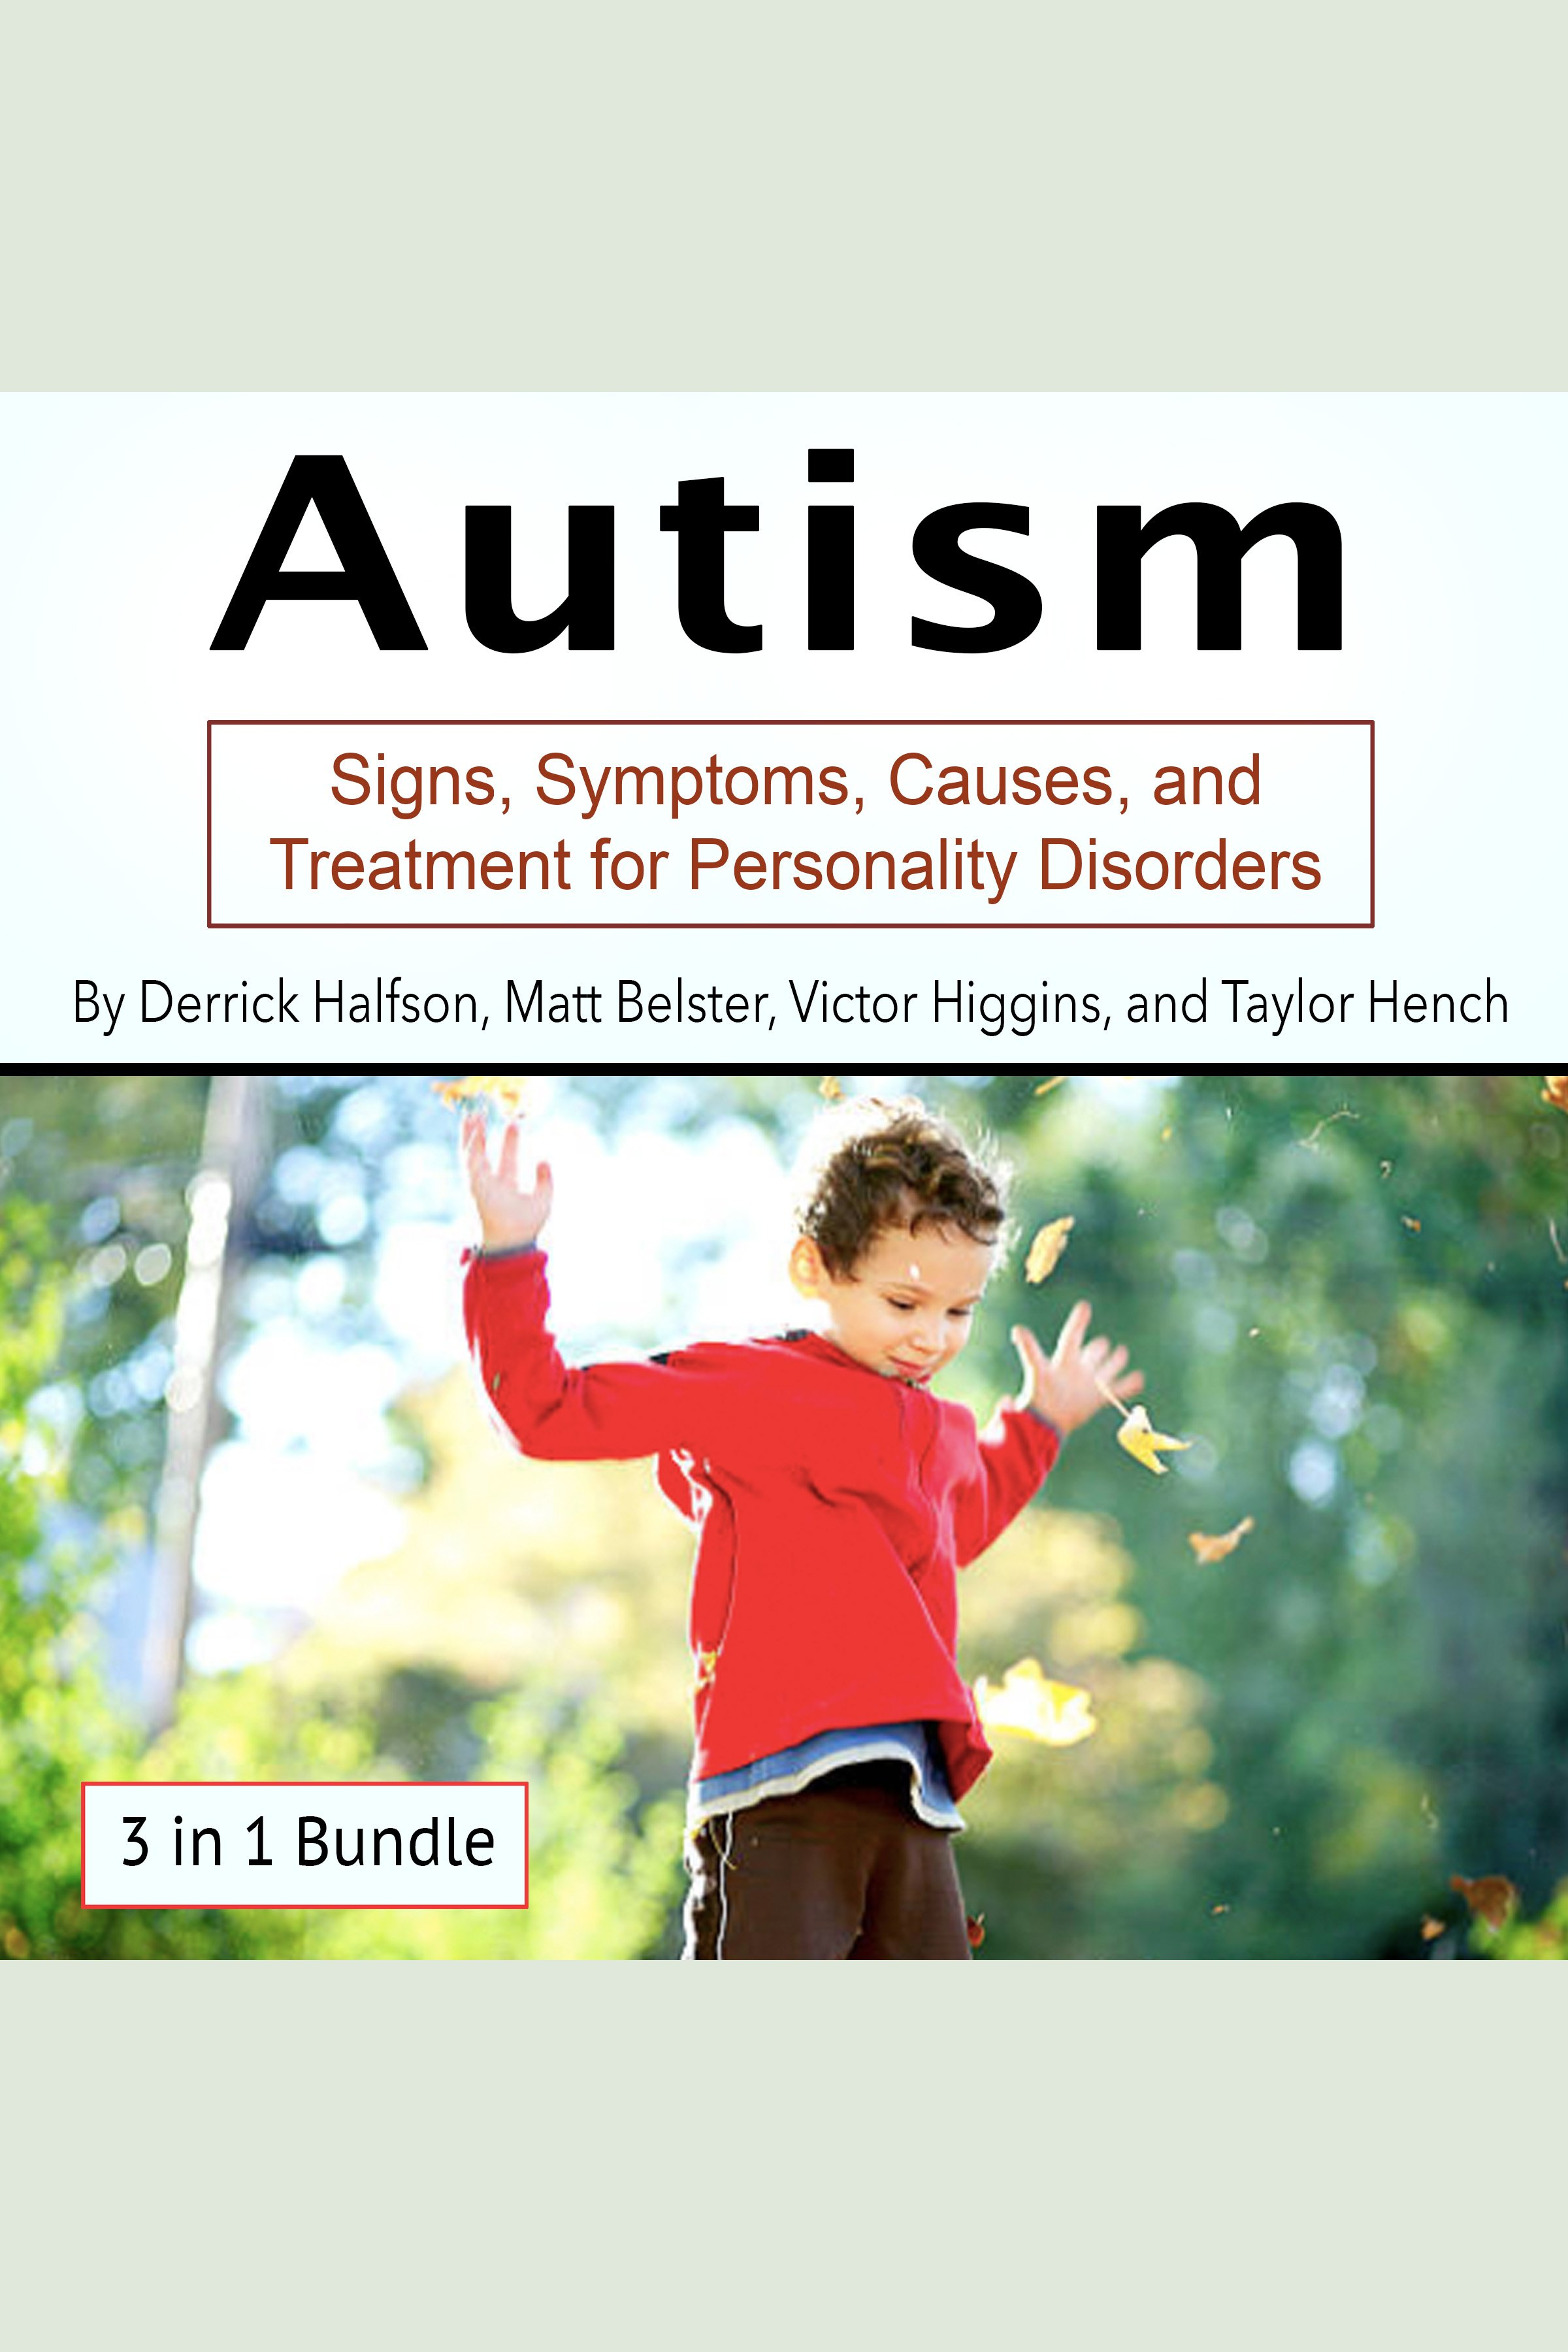 Autism Signs, Symptoms, Causes, and Treatment for Personality Disorders